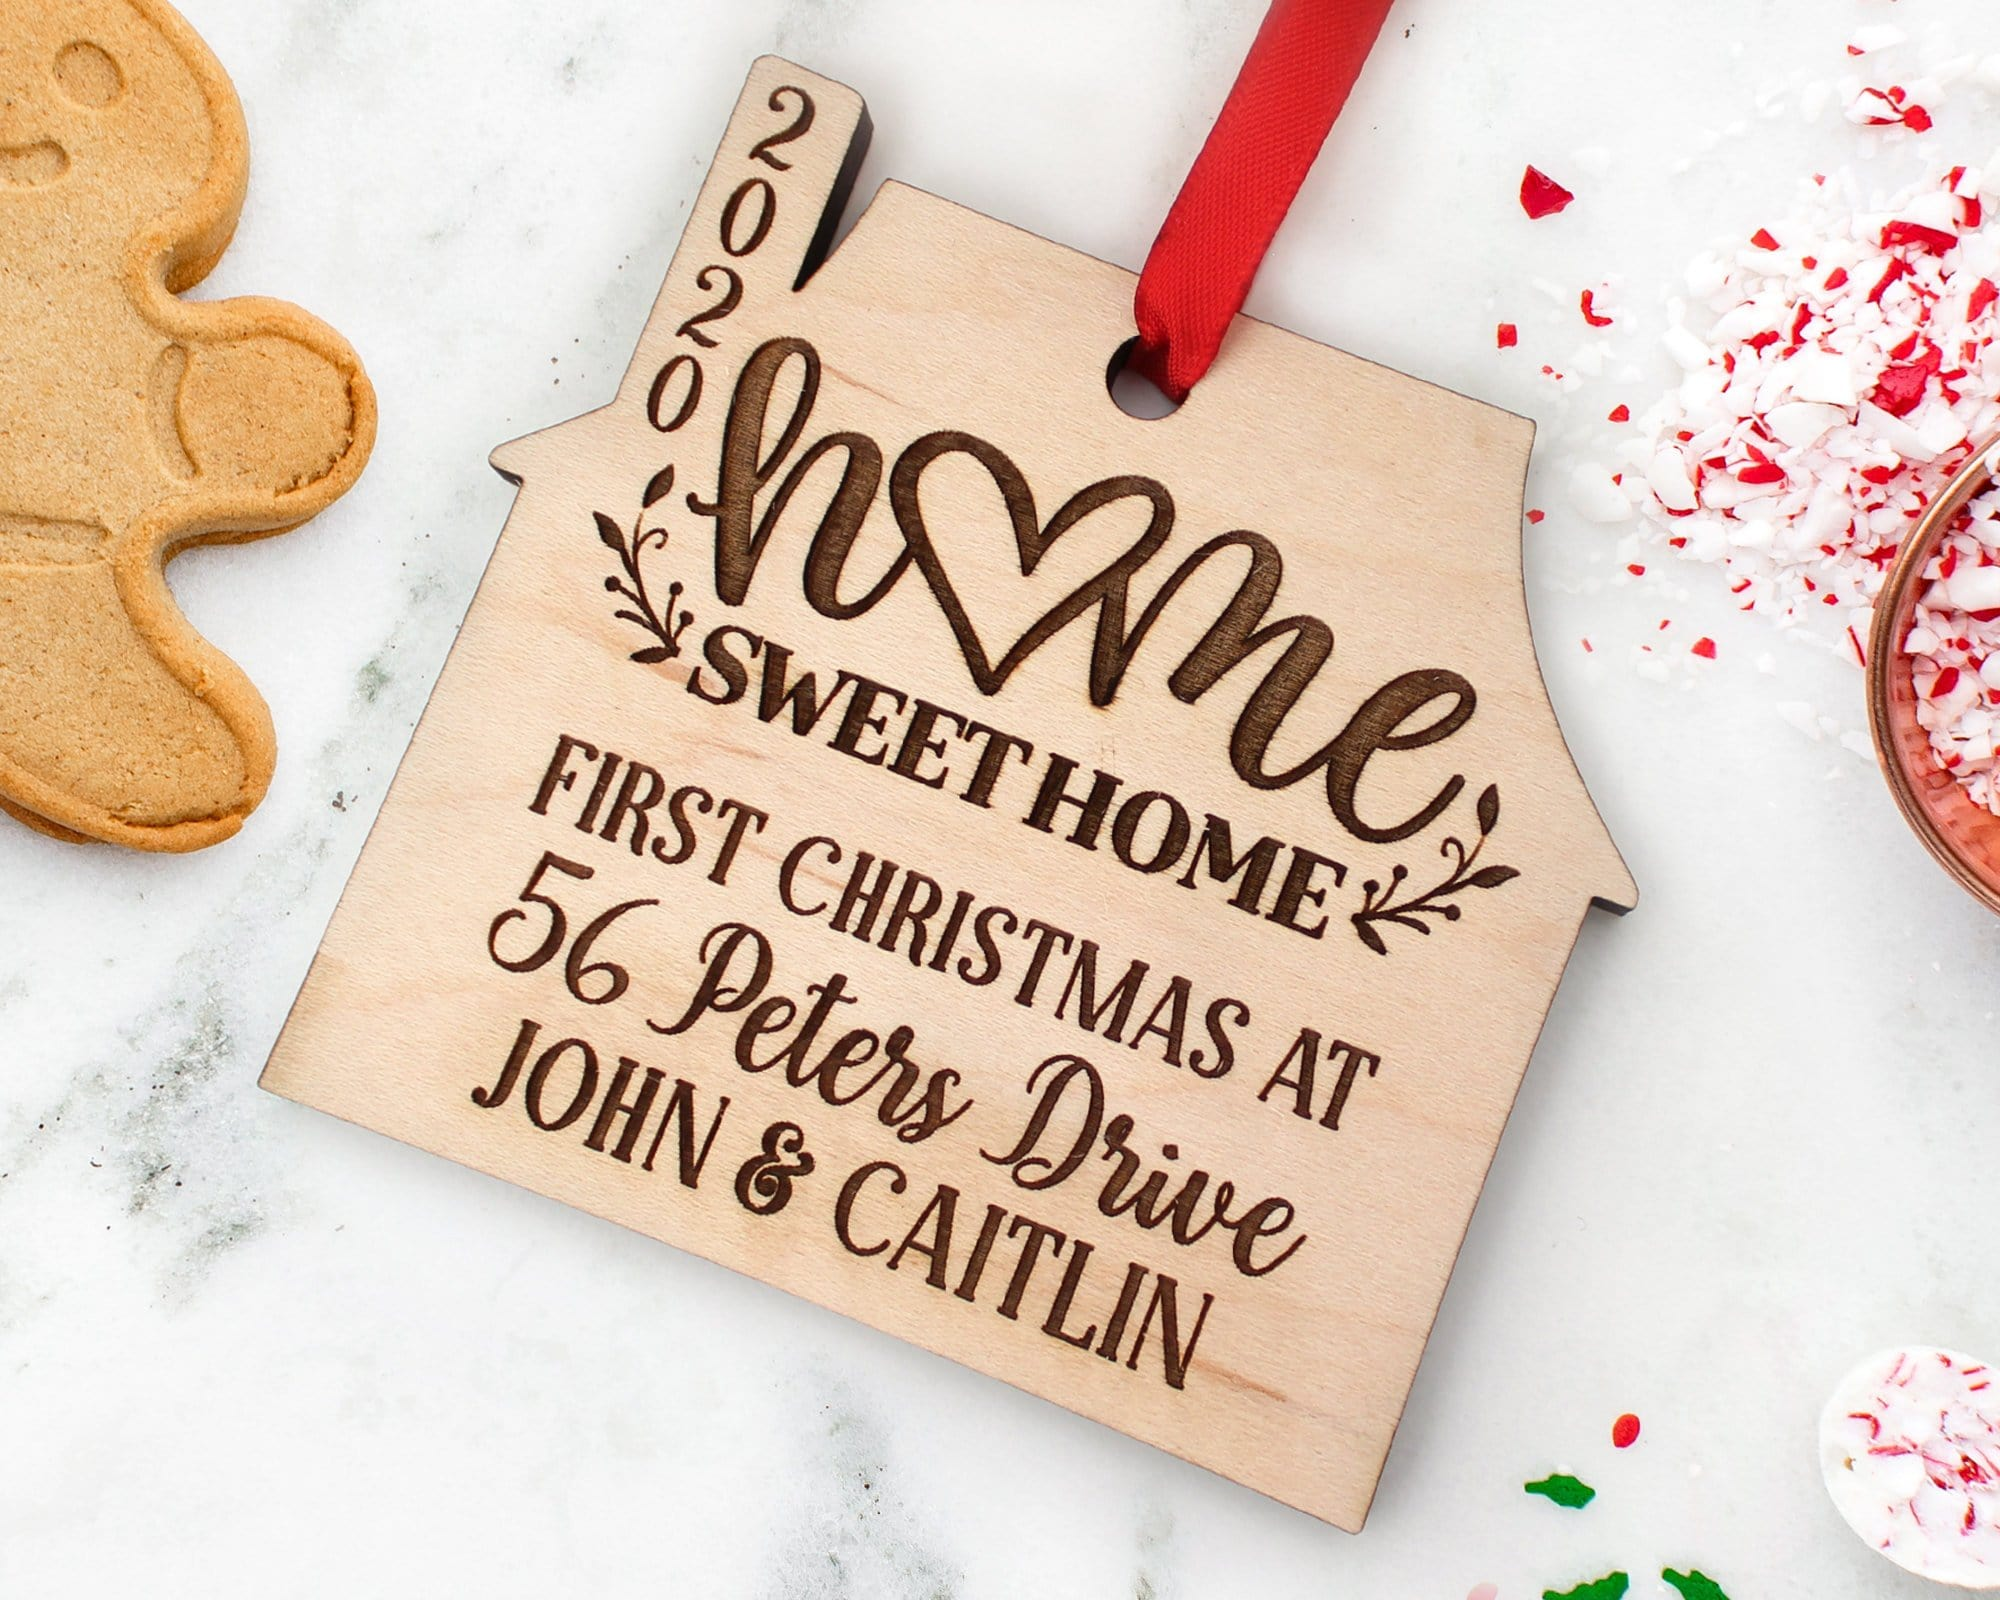 Personalized First Christmas At Address Wood Engraved House Ornament